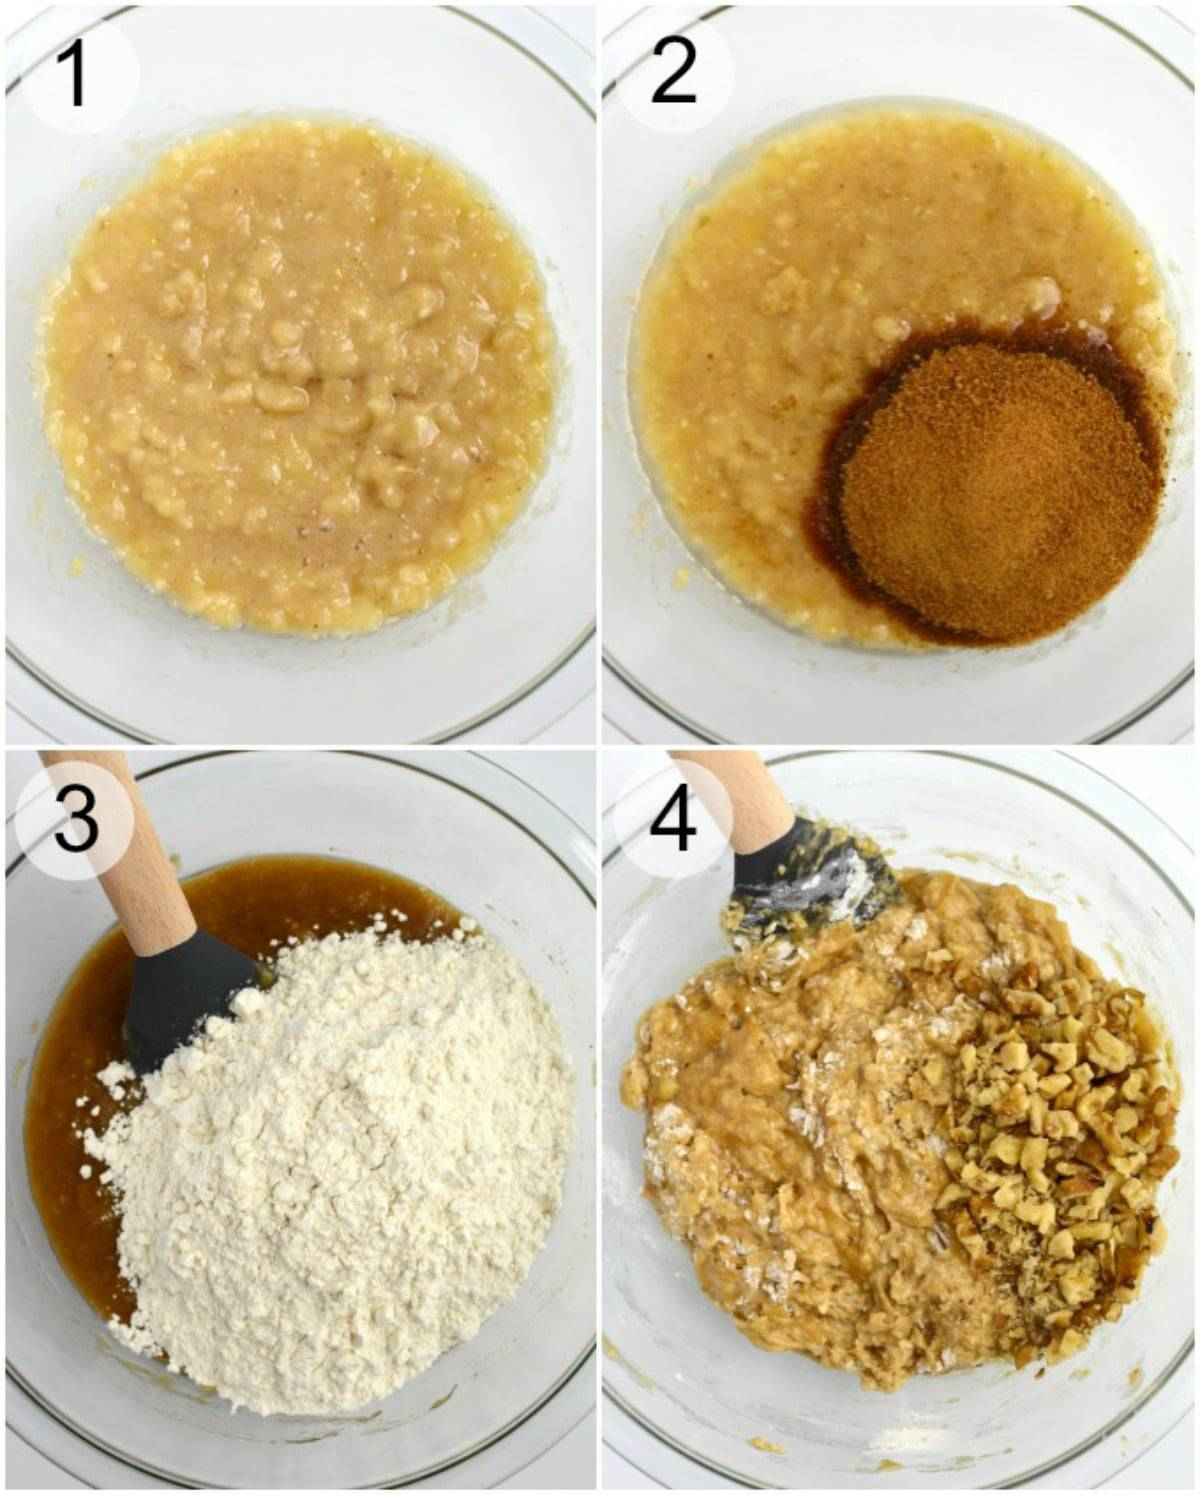 Process of mashing bananas, adding wet and dry ingredients then mixing to create a batter.